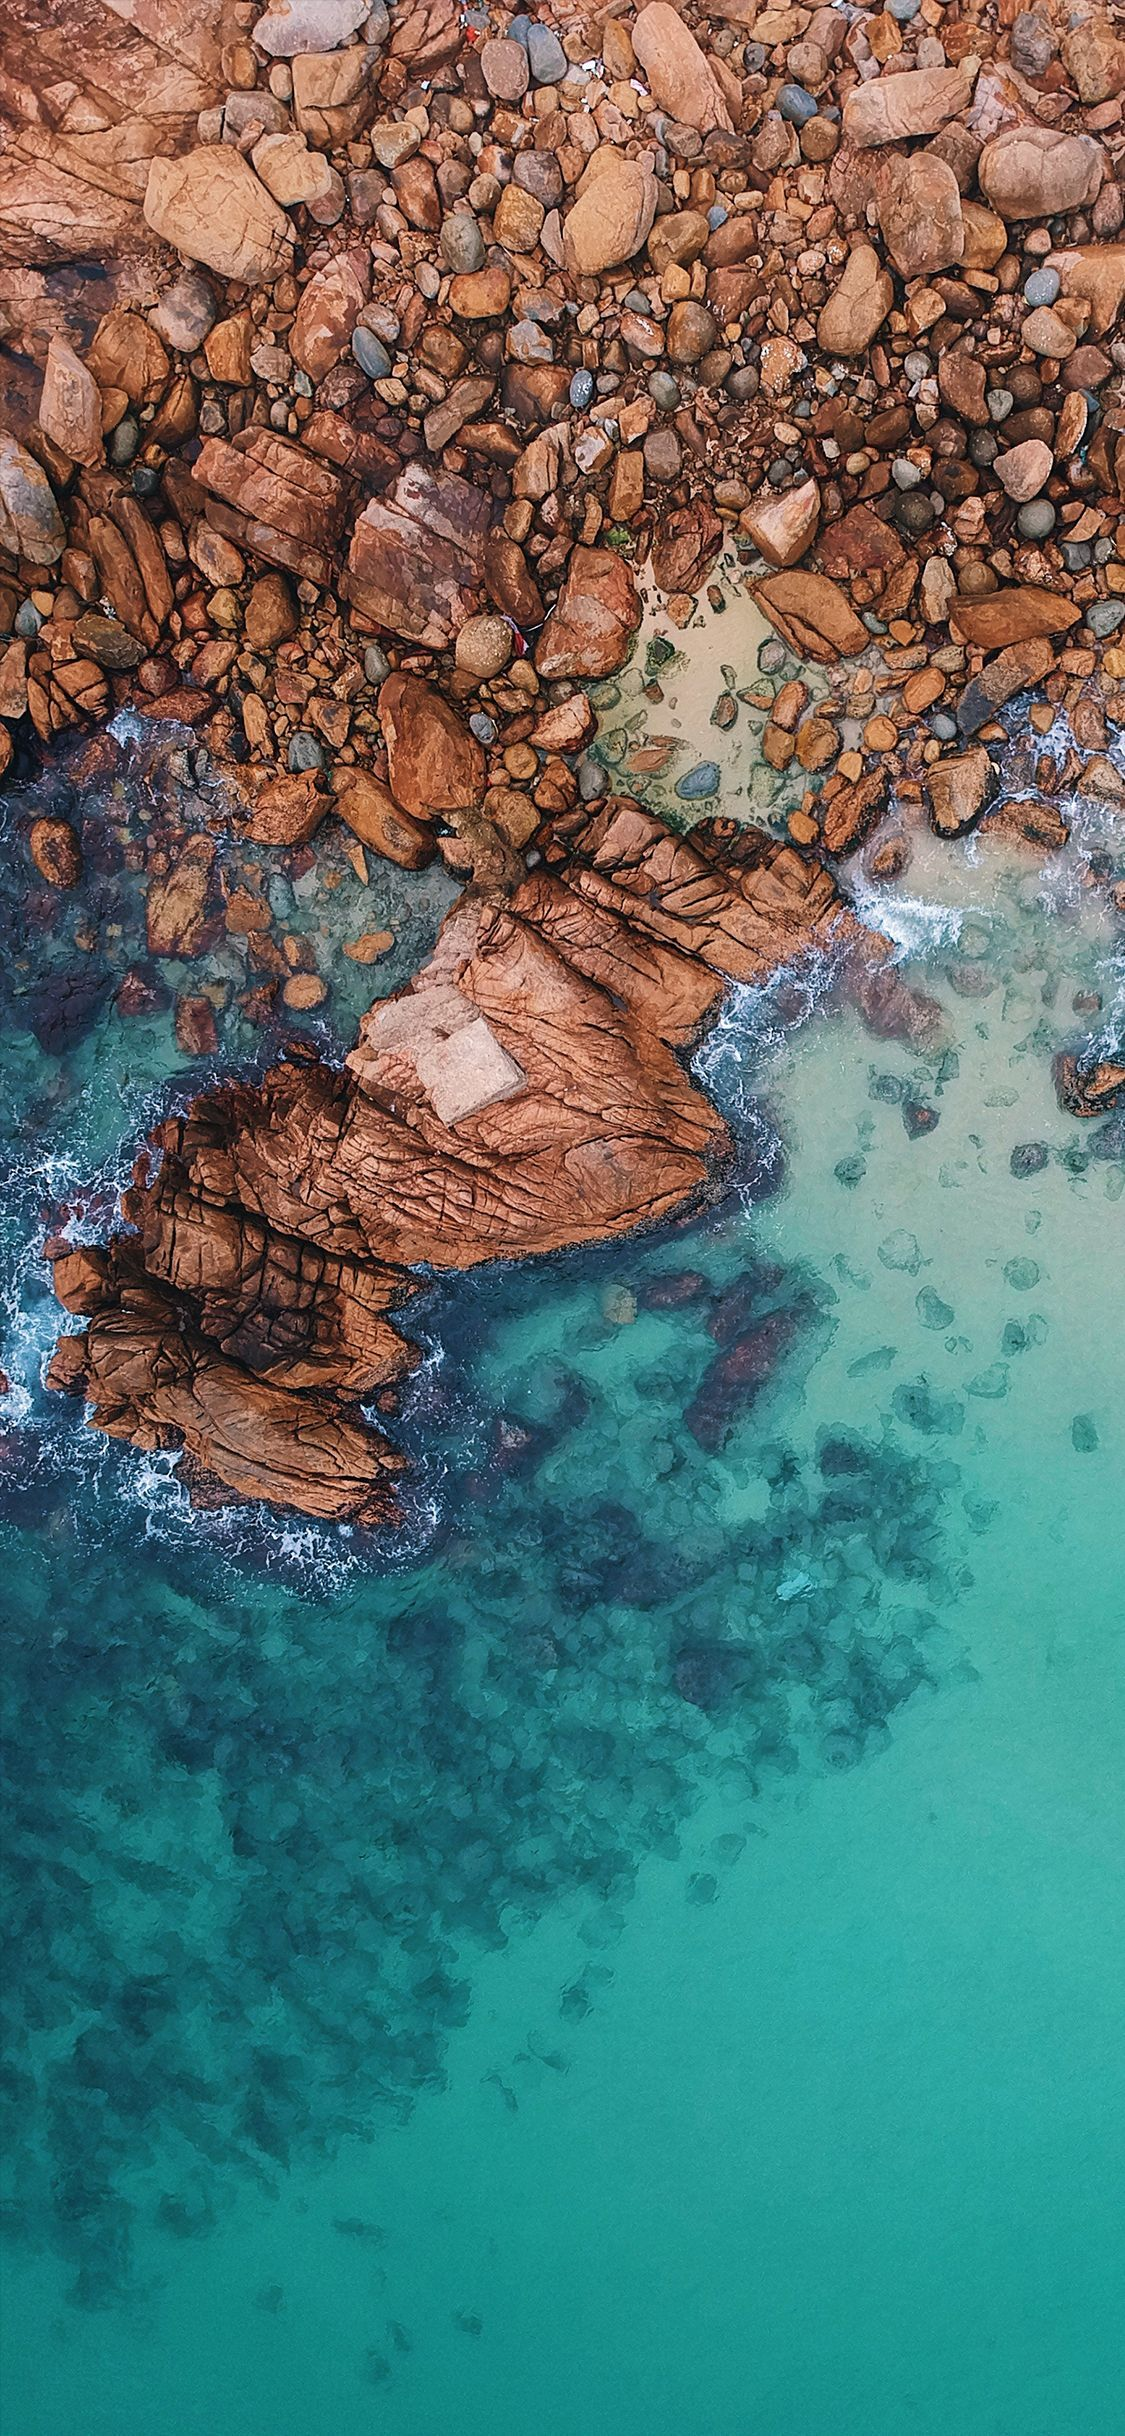 5 Awesome Iphone 8 Iphone Xs Or Iphone Xr Wallpapers 62 Awesomeimagesdownload Plano De Fundo Iphone Plano De Fundo Celular Planos De Fundo